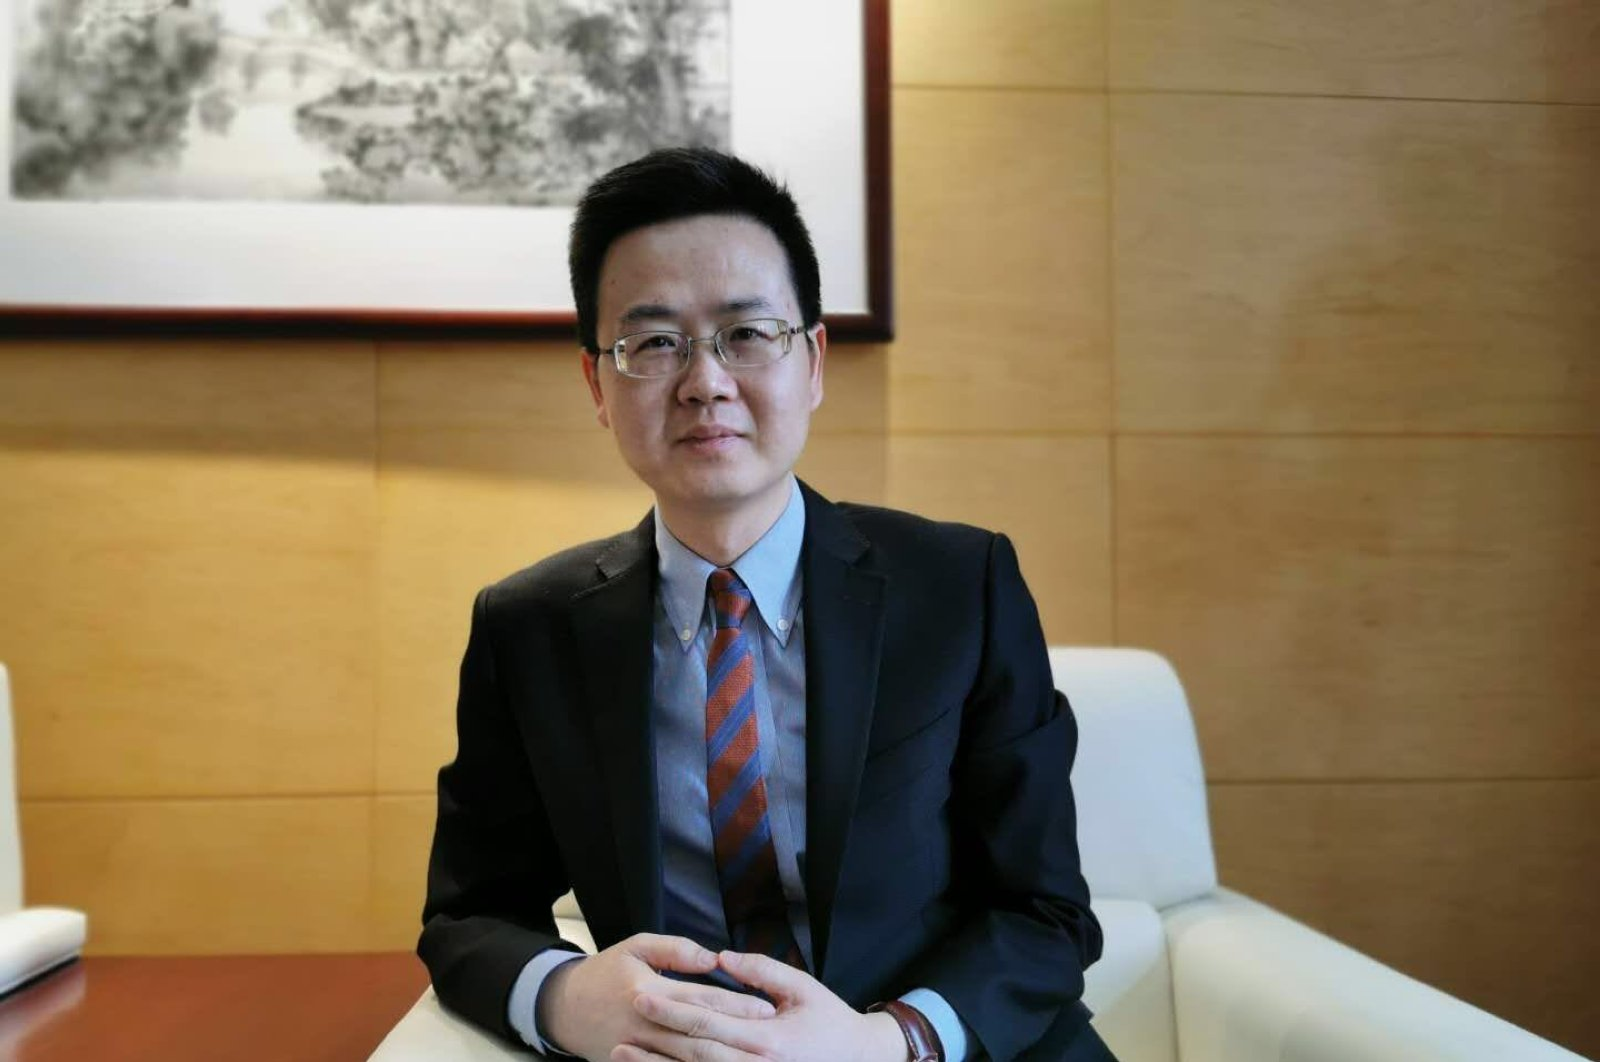 Cheng Weihua, the undersecretary of the Chinese Embassy in Ankara, March 13, 2020.